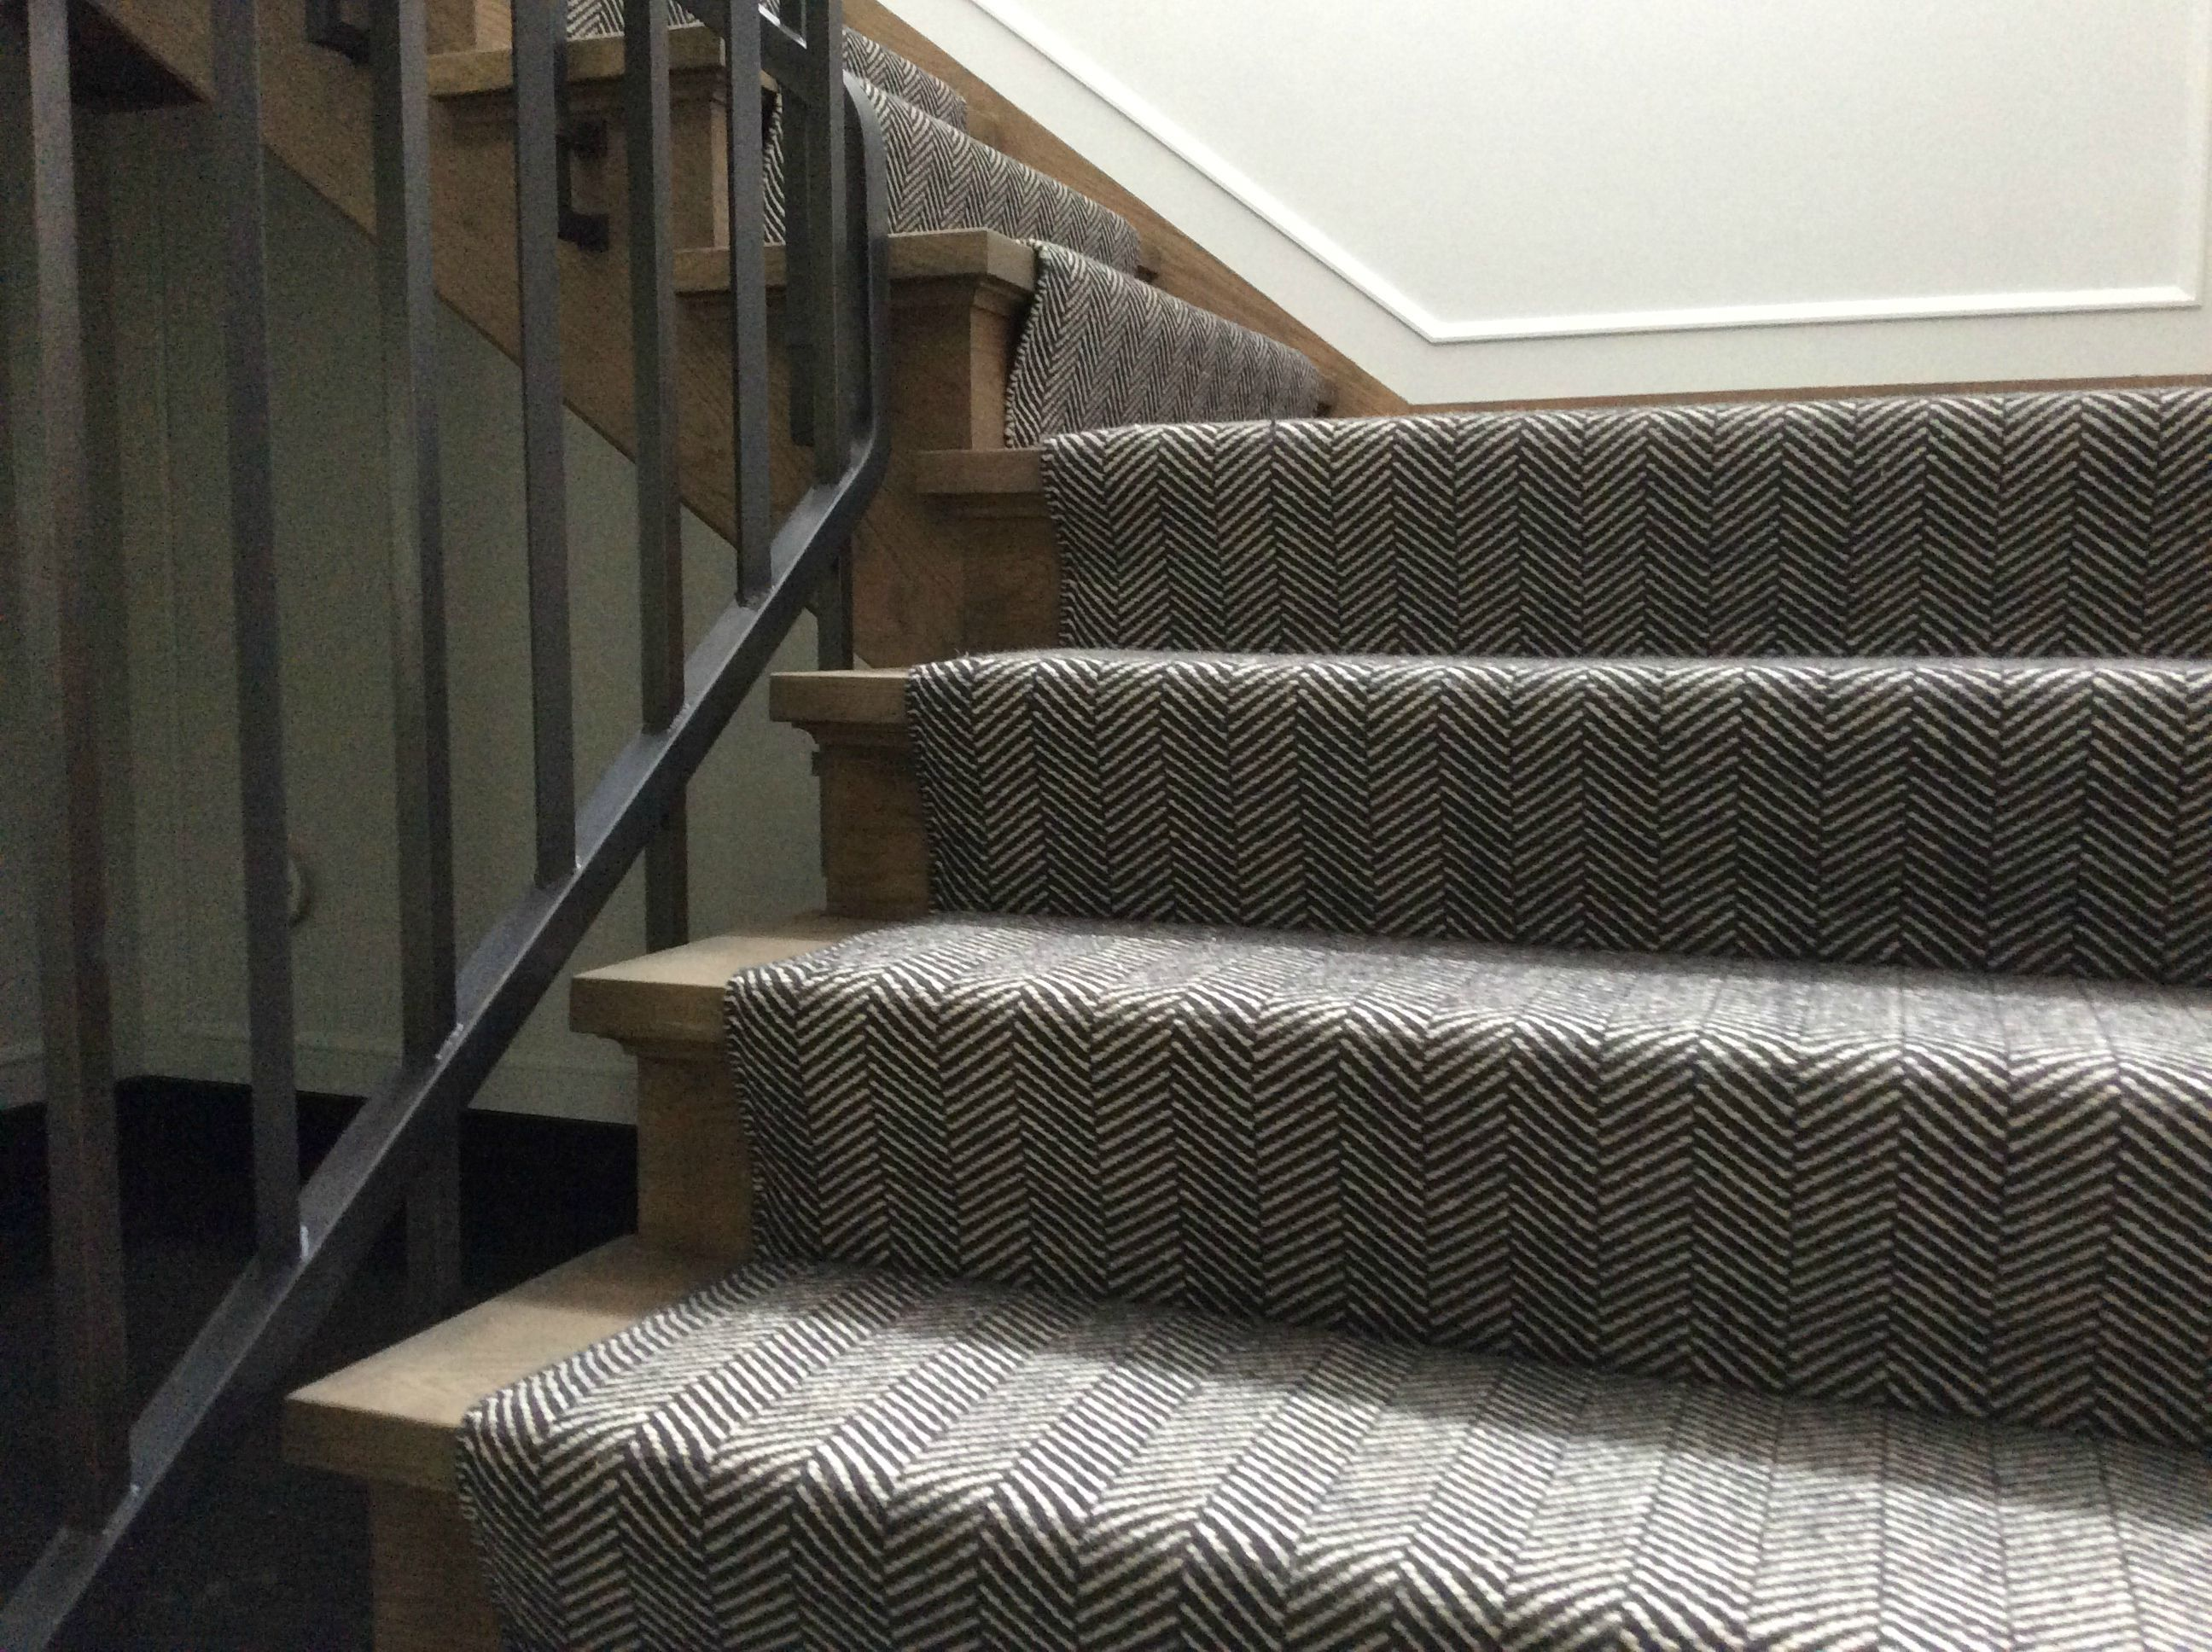 Best Cavalcanti Stair Runner In Herringbone Design Flatwoven With Pure New Zealand Wool Available 640 x 480